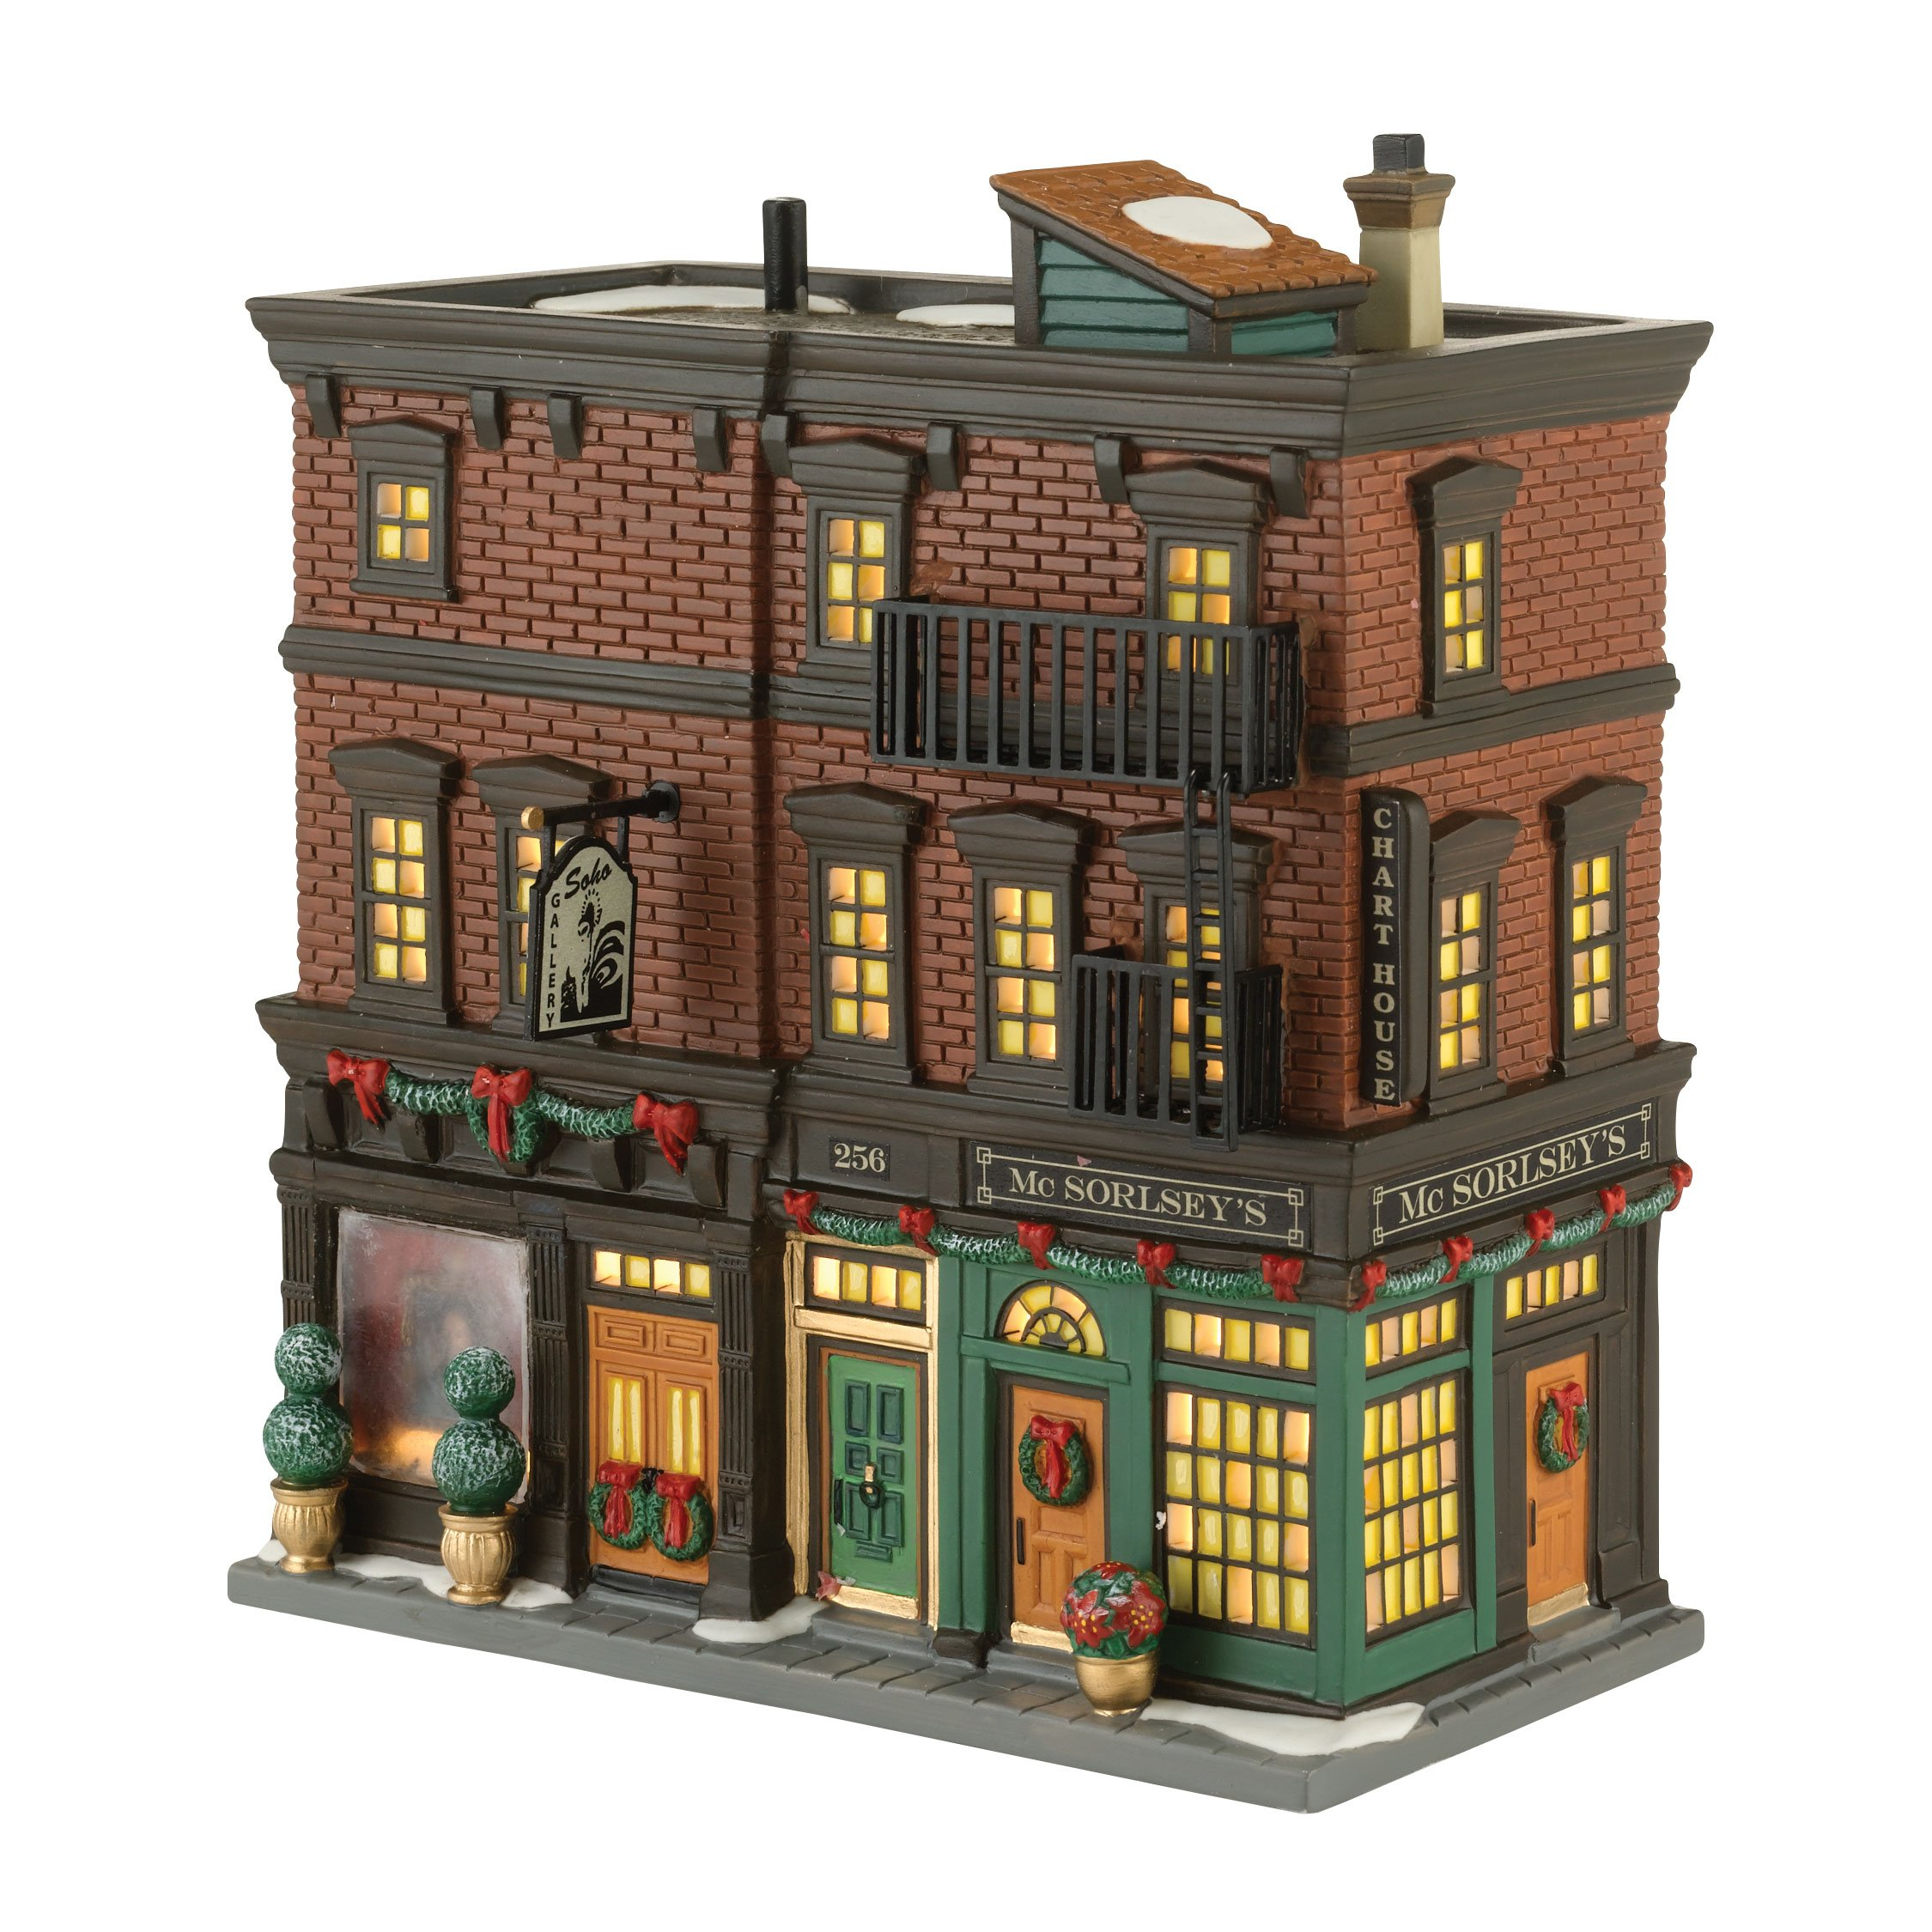 Department 56 Christmas in the City Village Soho Shops Lit House, 7.67 inch by Department 56